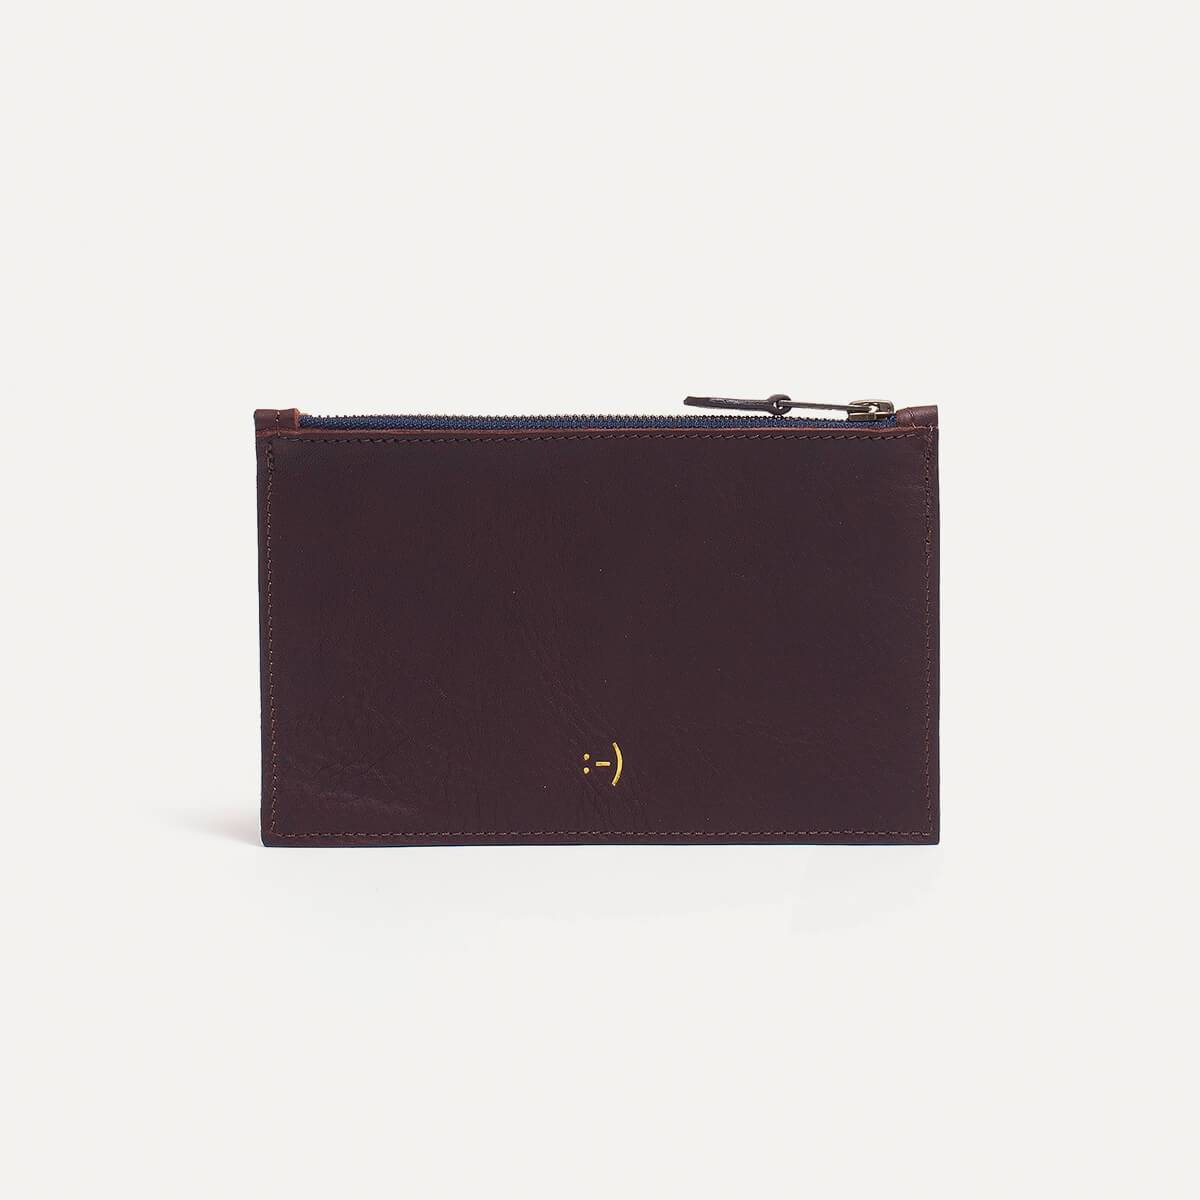 Leather Pouch COSMO S - Peat (image n°1)